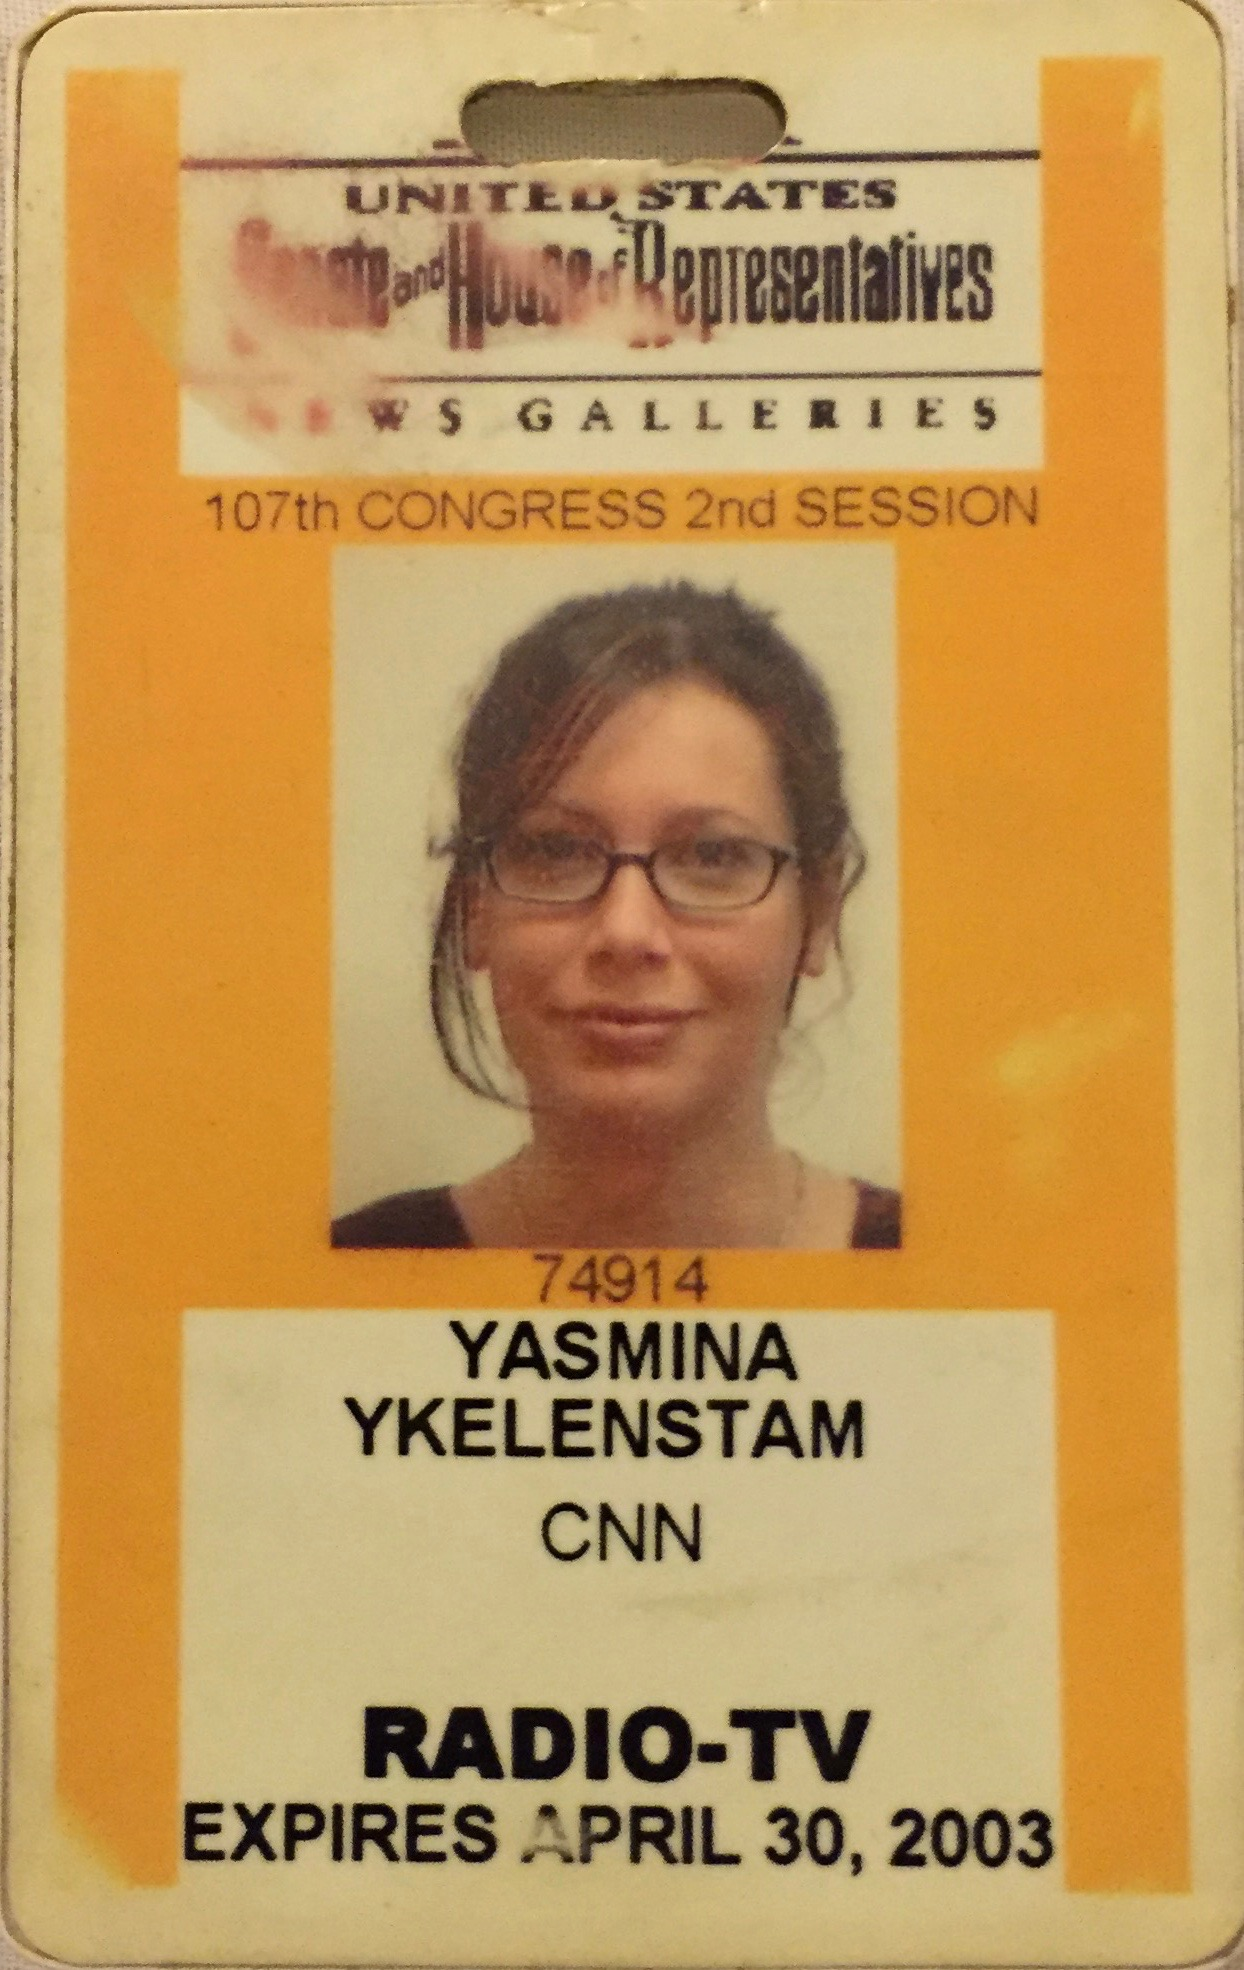 My Washington DC CNN press pass